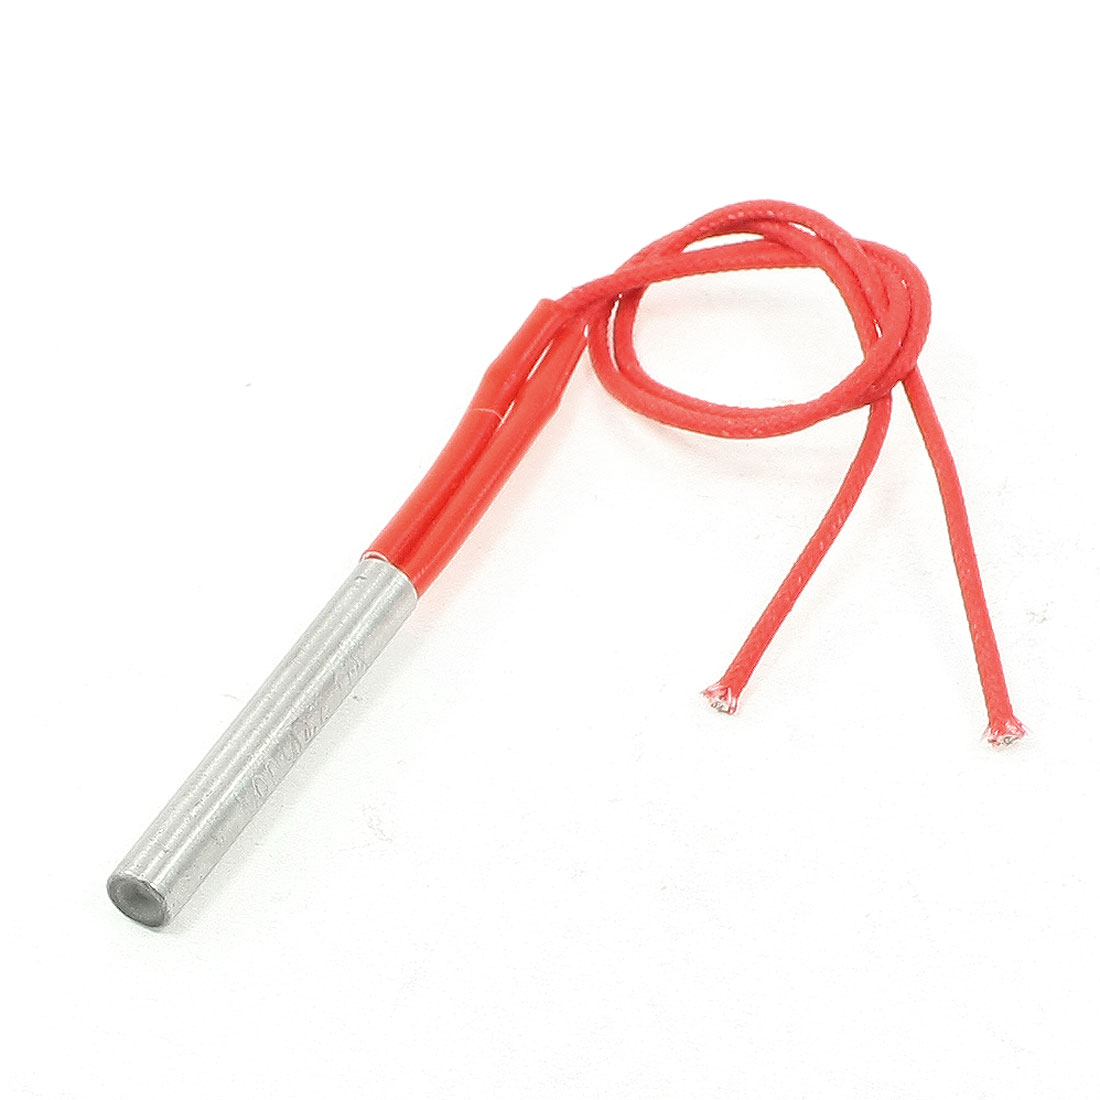 220V 100W 8mm x 50mm Cartridge Heater Heating Element